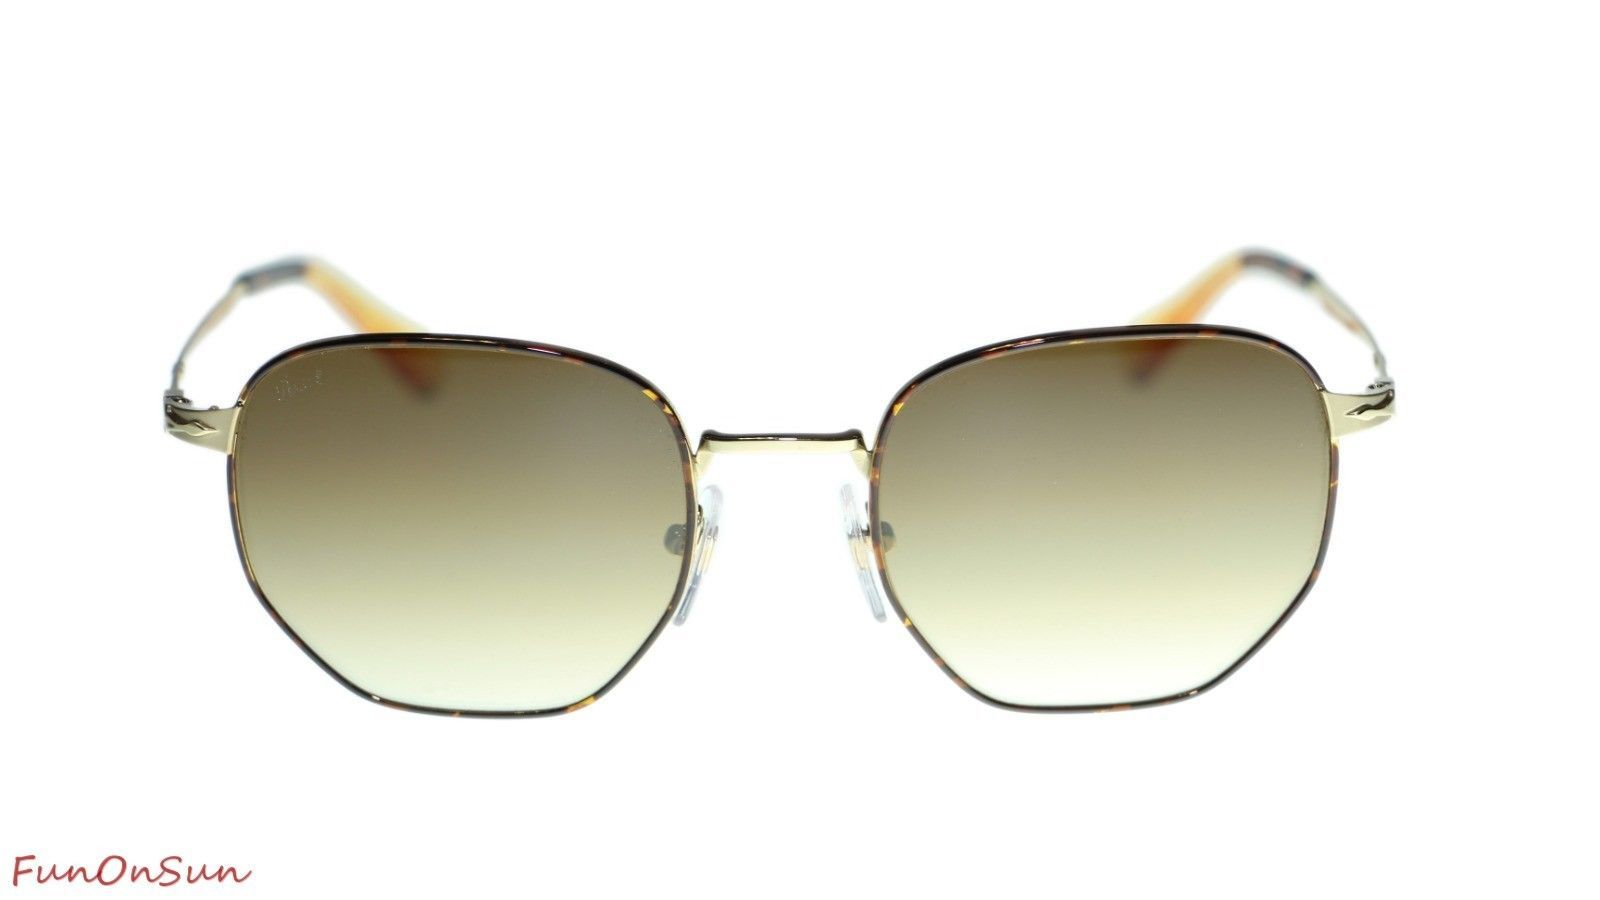 fcdd60ac84 Persol Irregular Sunglasses PO2446S 107551 Havana Gold Clear Gradient Brown  52mm